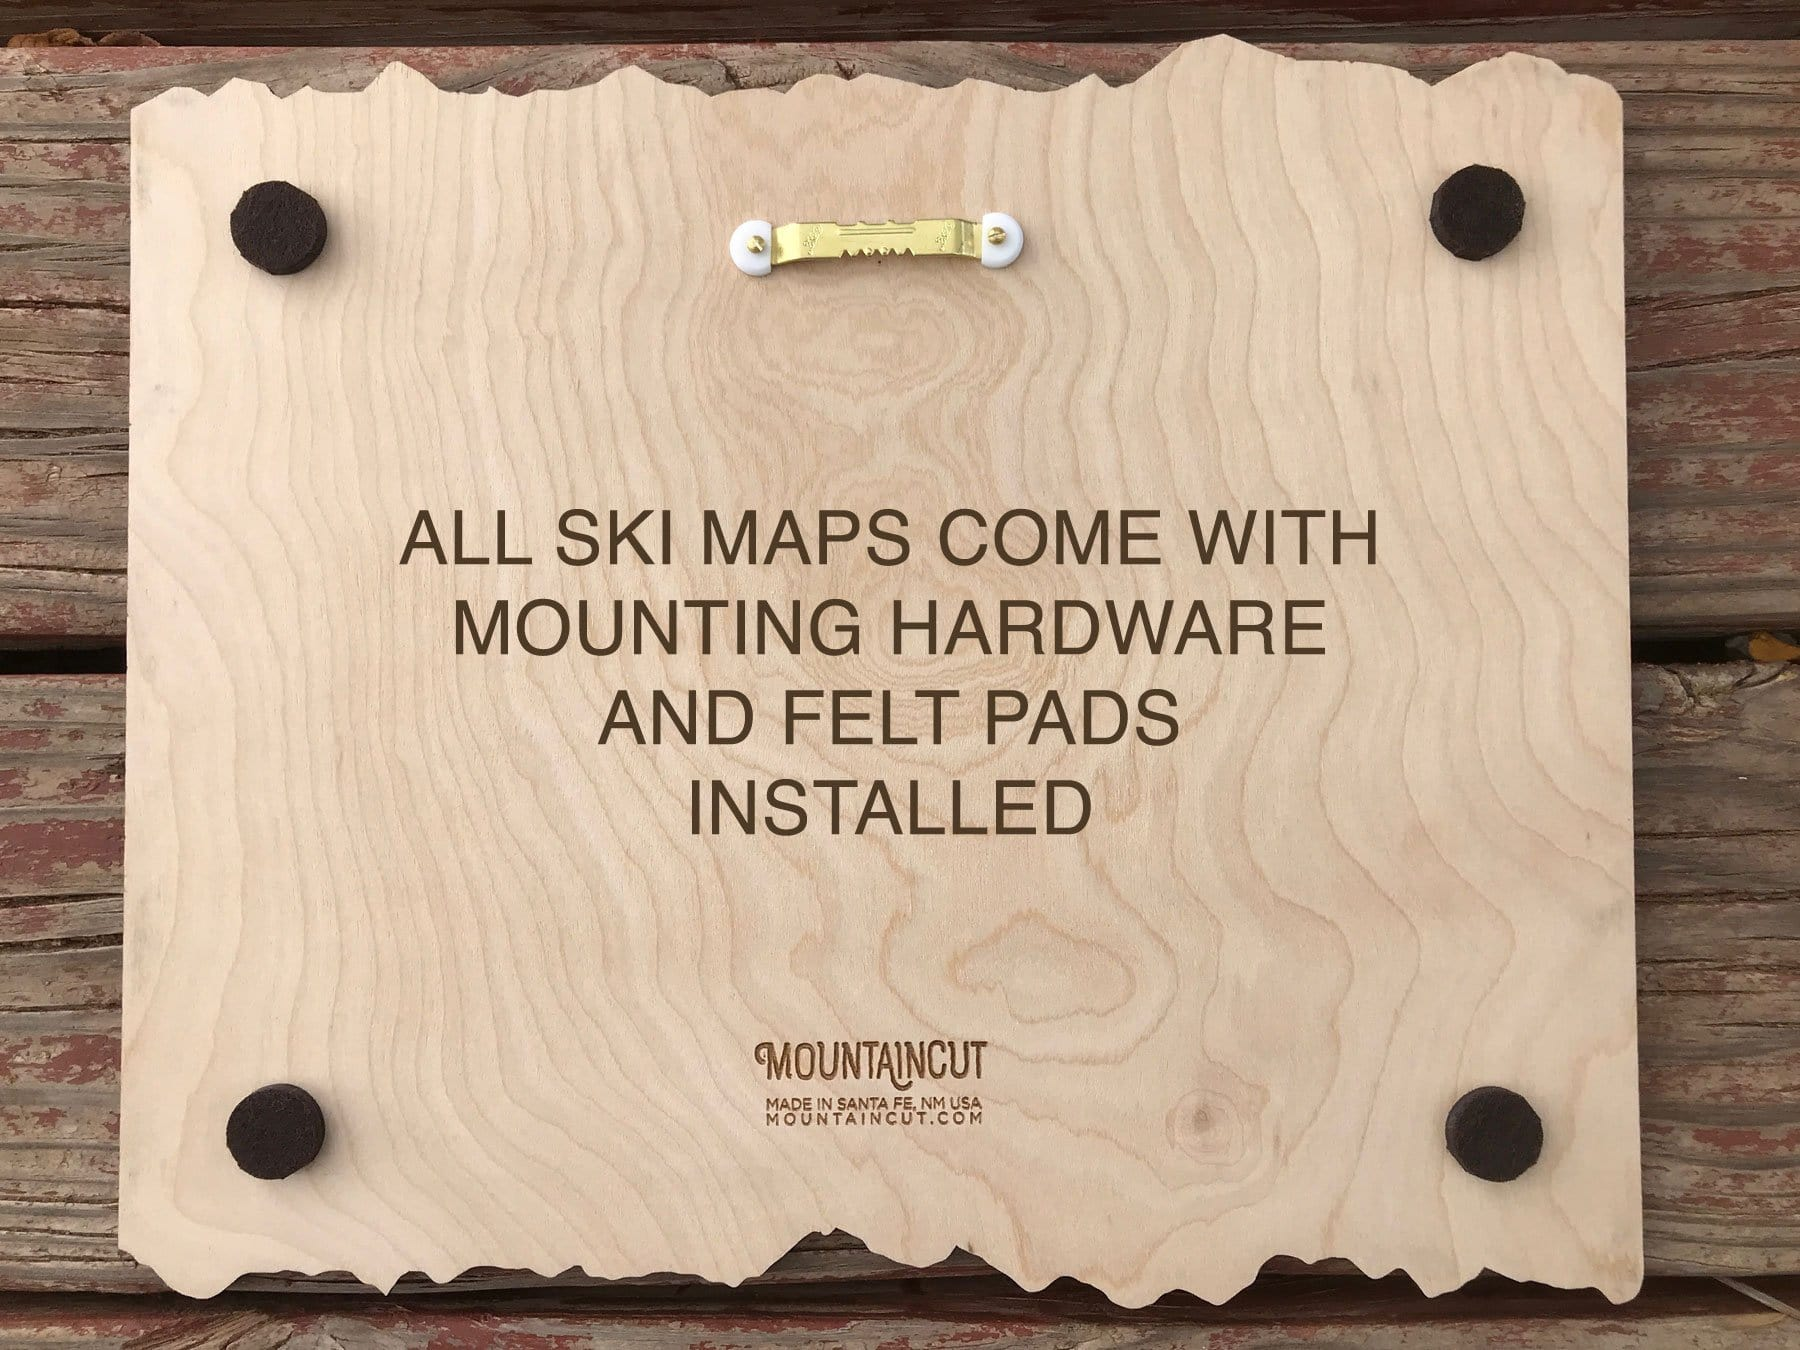 Taos Ski Valley Ski Decor Trail Map Art - MountainCut